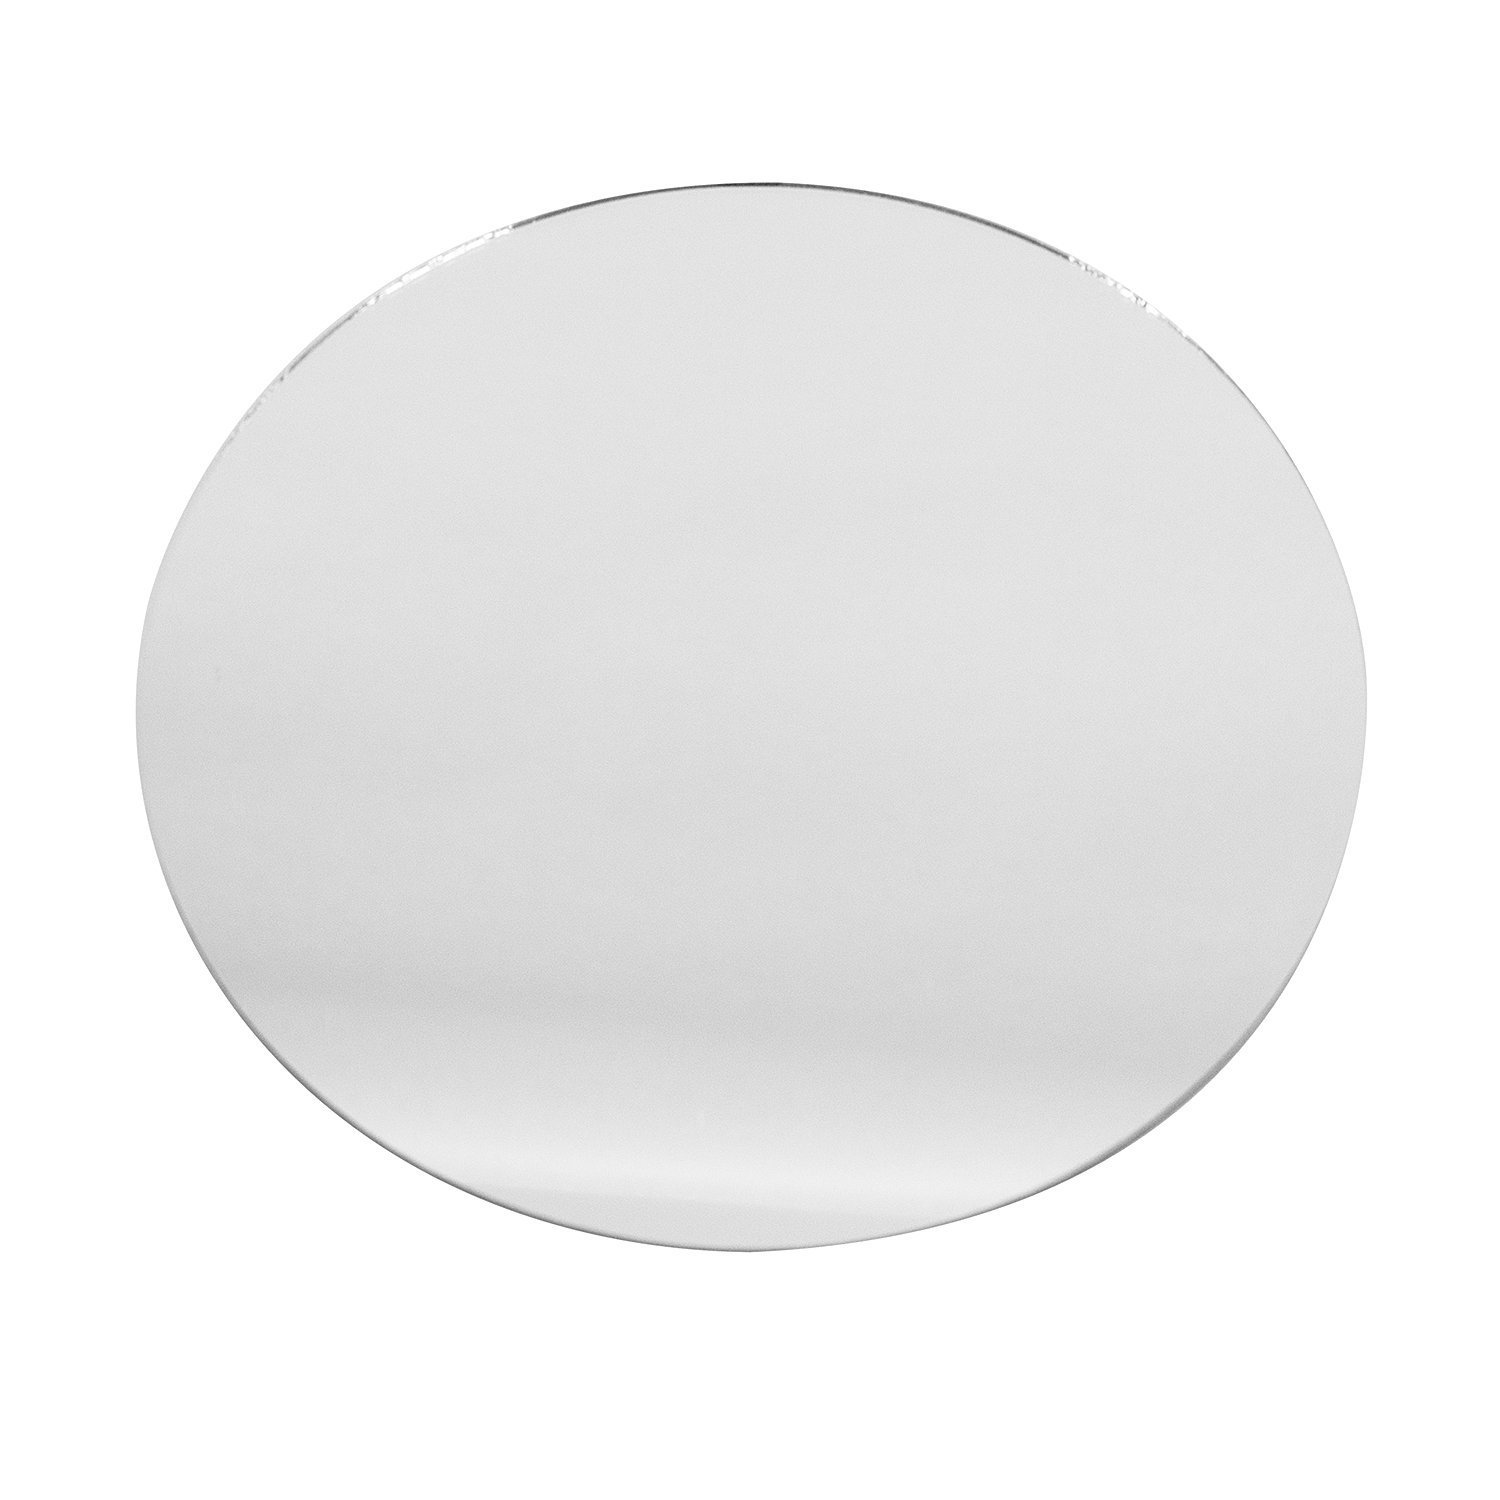 Round Glass Mirror Wedding Banquet Table Centerpieces, Smooth edges (Sets of 12) (12'')